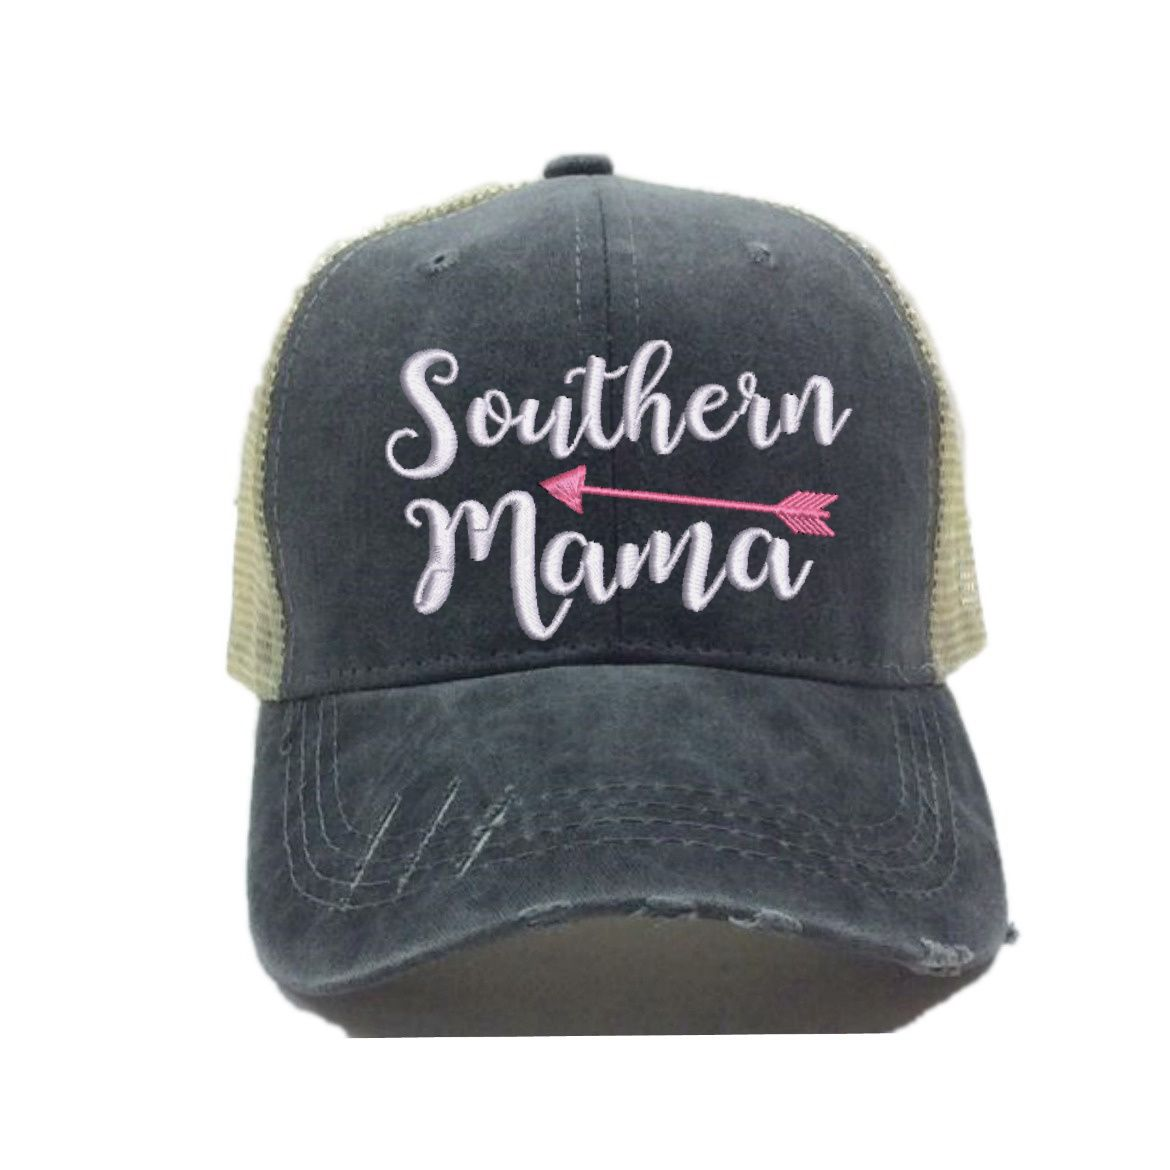 768bfccd0db Southern Mama Custom Trucker Hat For Women - Distressed - Vintage - Worn  Look - Brass Buckle - Adjustable - Embroidered Hat - Made To Order - Mom Hat